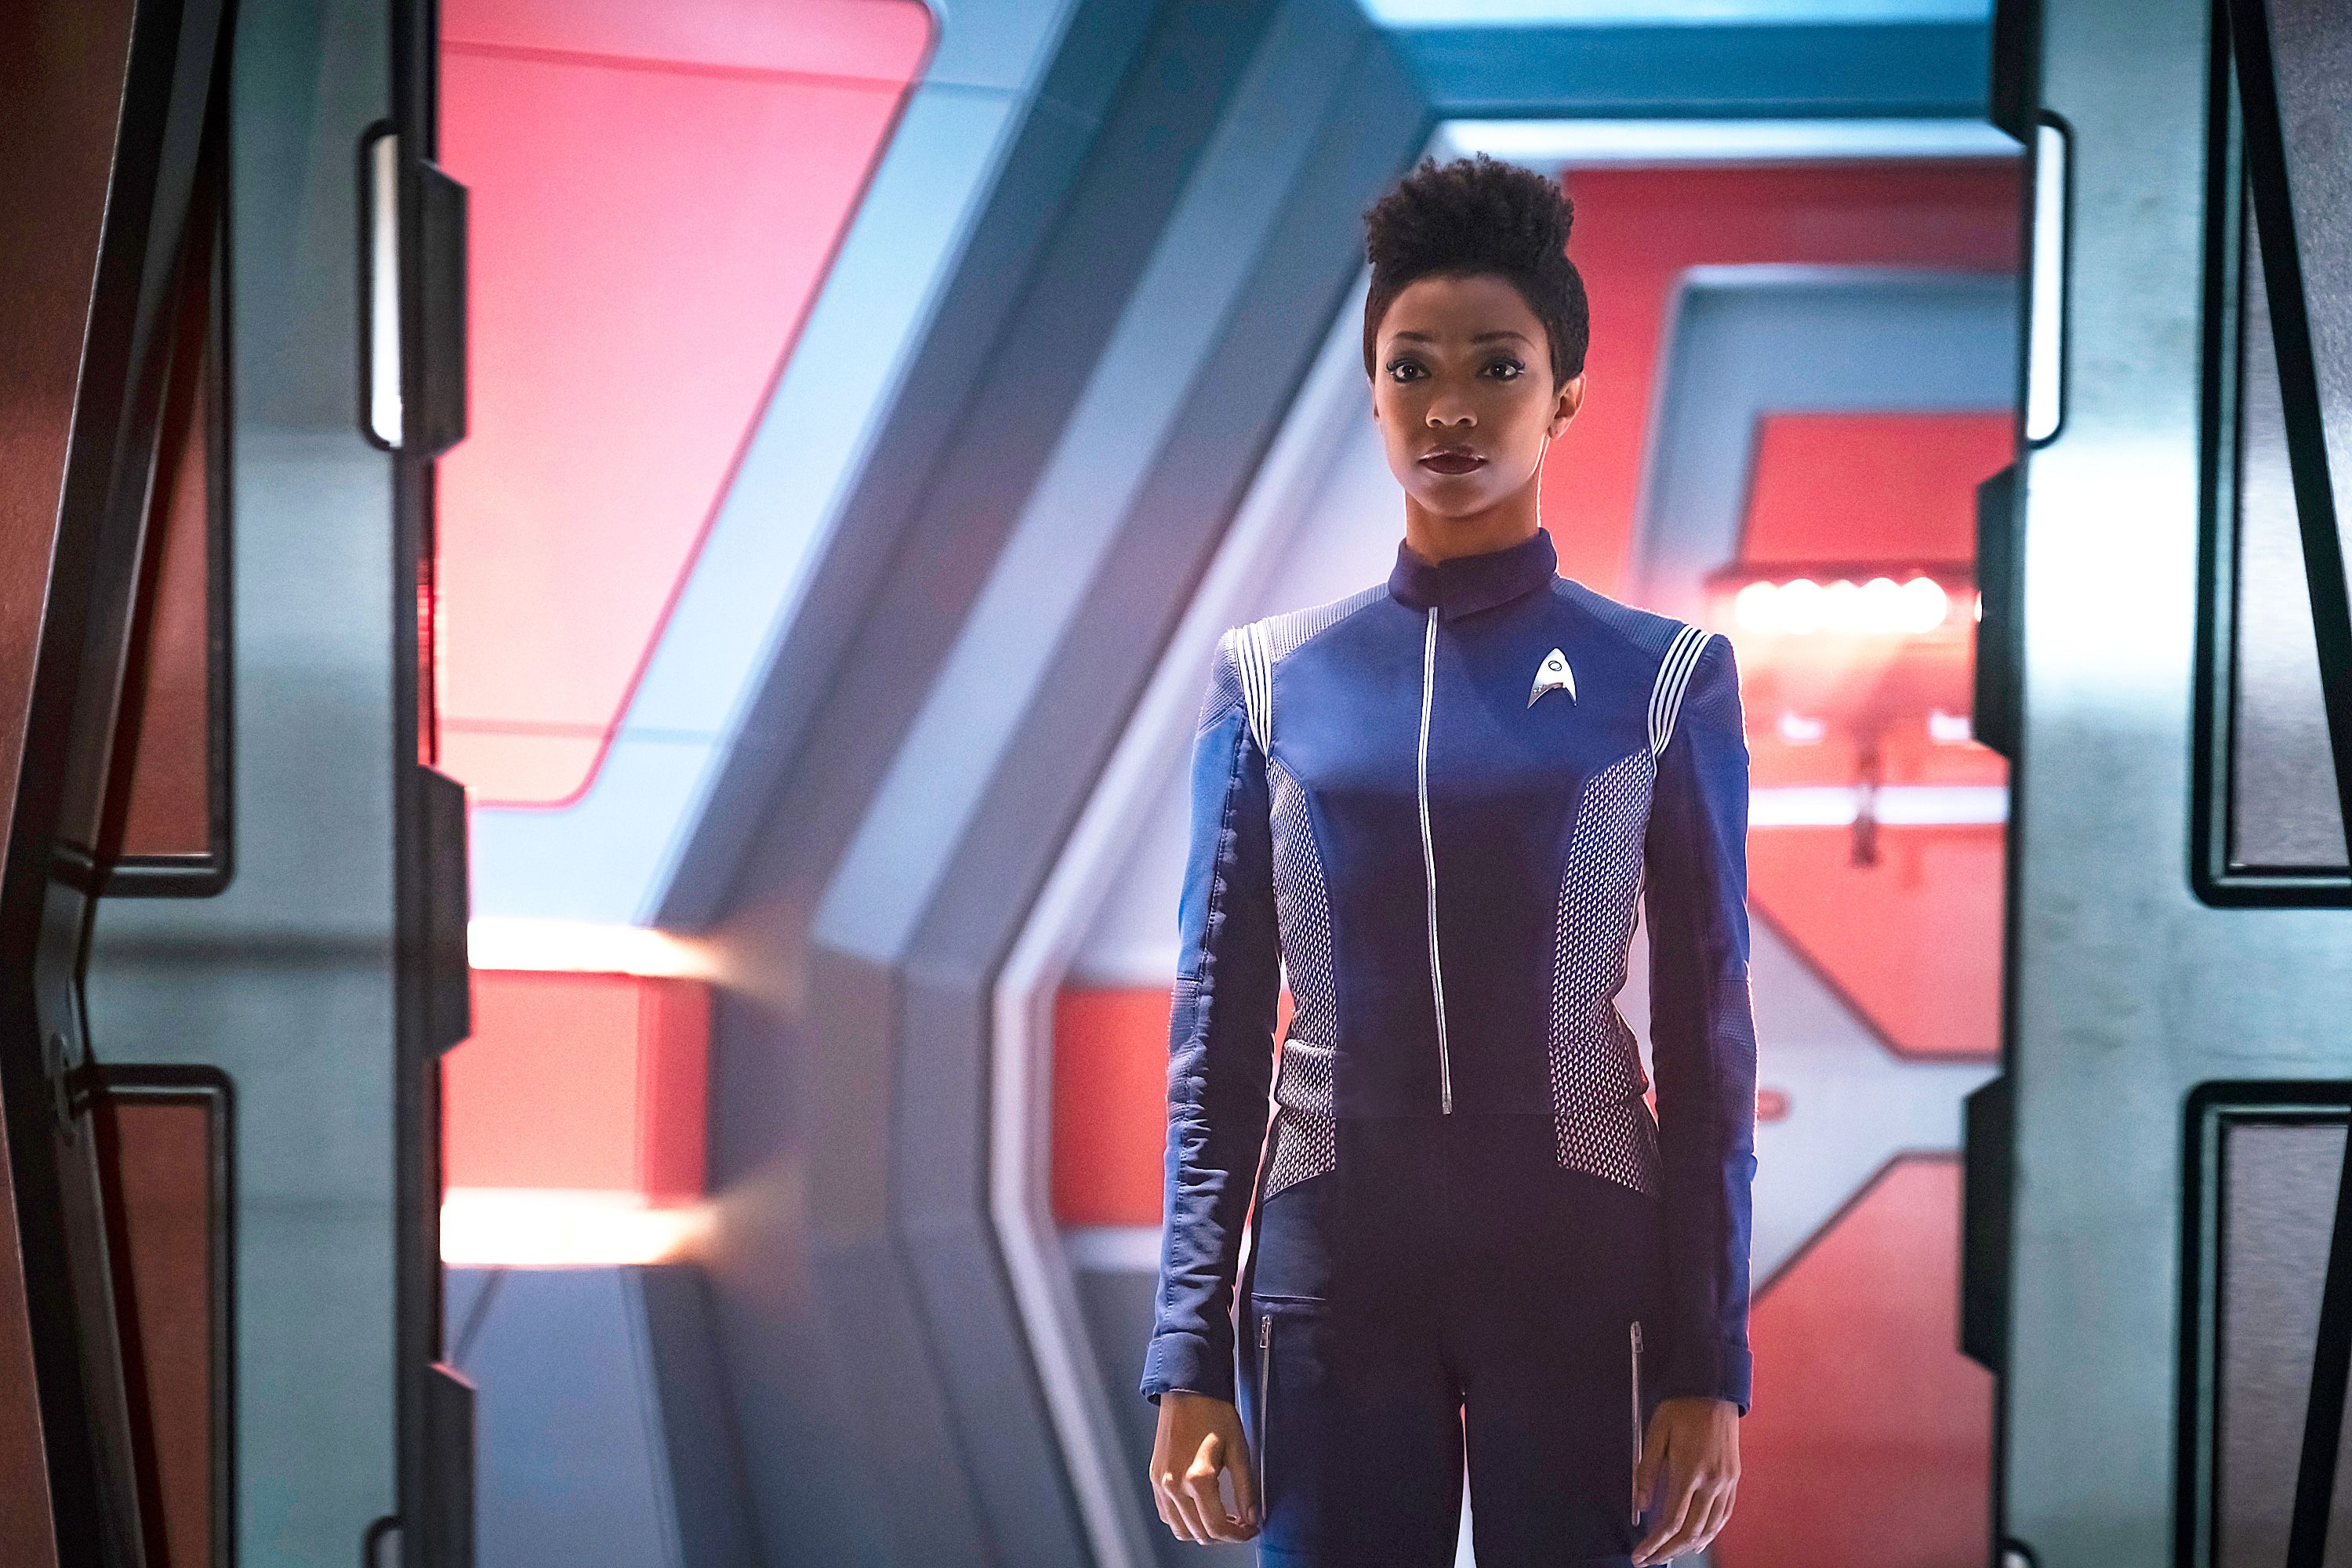 Star Trek Discovery season 3 release date, cast, plot and more